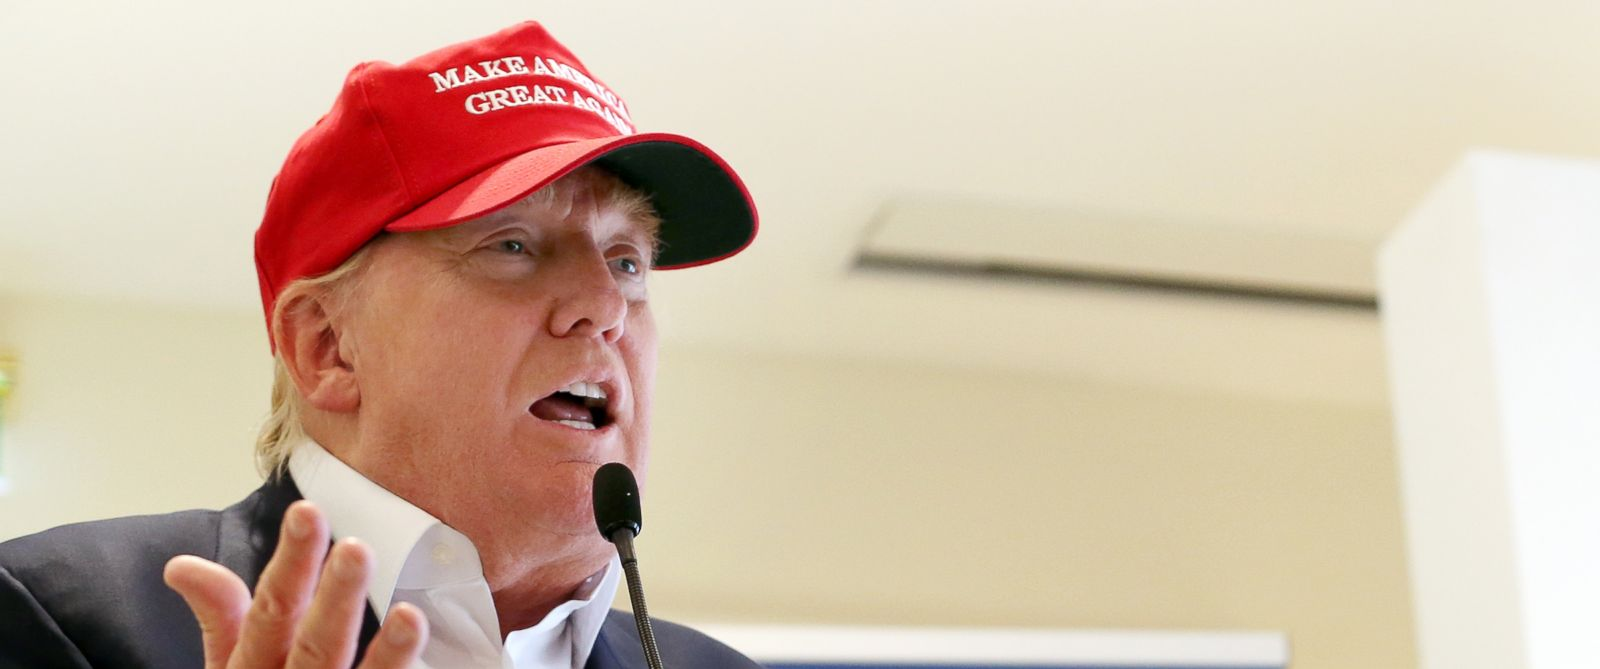 PHOTO: In this July 30, 2015 file photo, Republican presidential candidate Donald Trump speaks to the media during a news conference on the first day of the Womens British Open golf championship on the Turnberry golf course in Turnberry, Scotland.